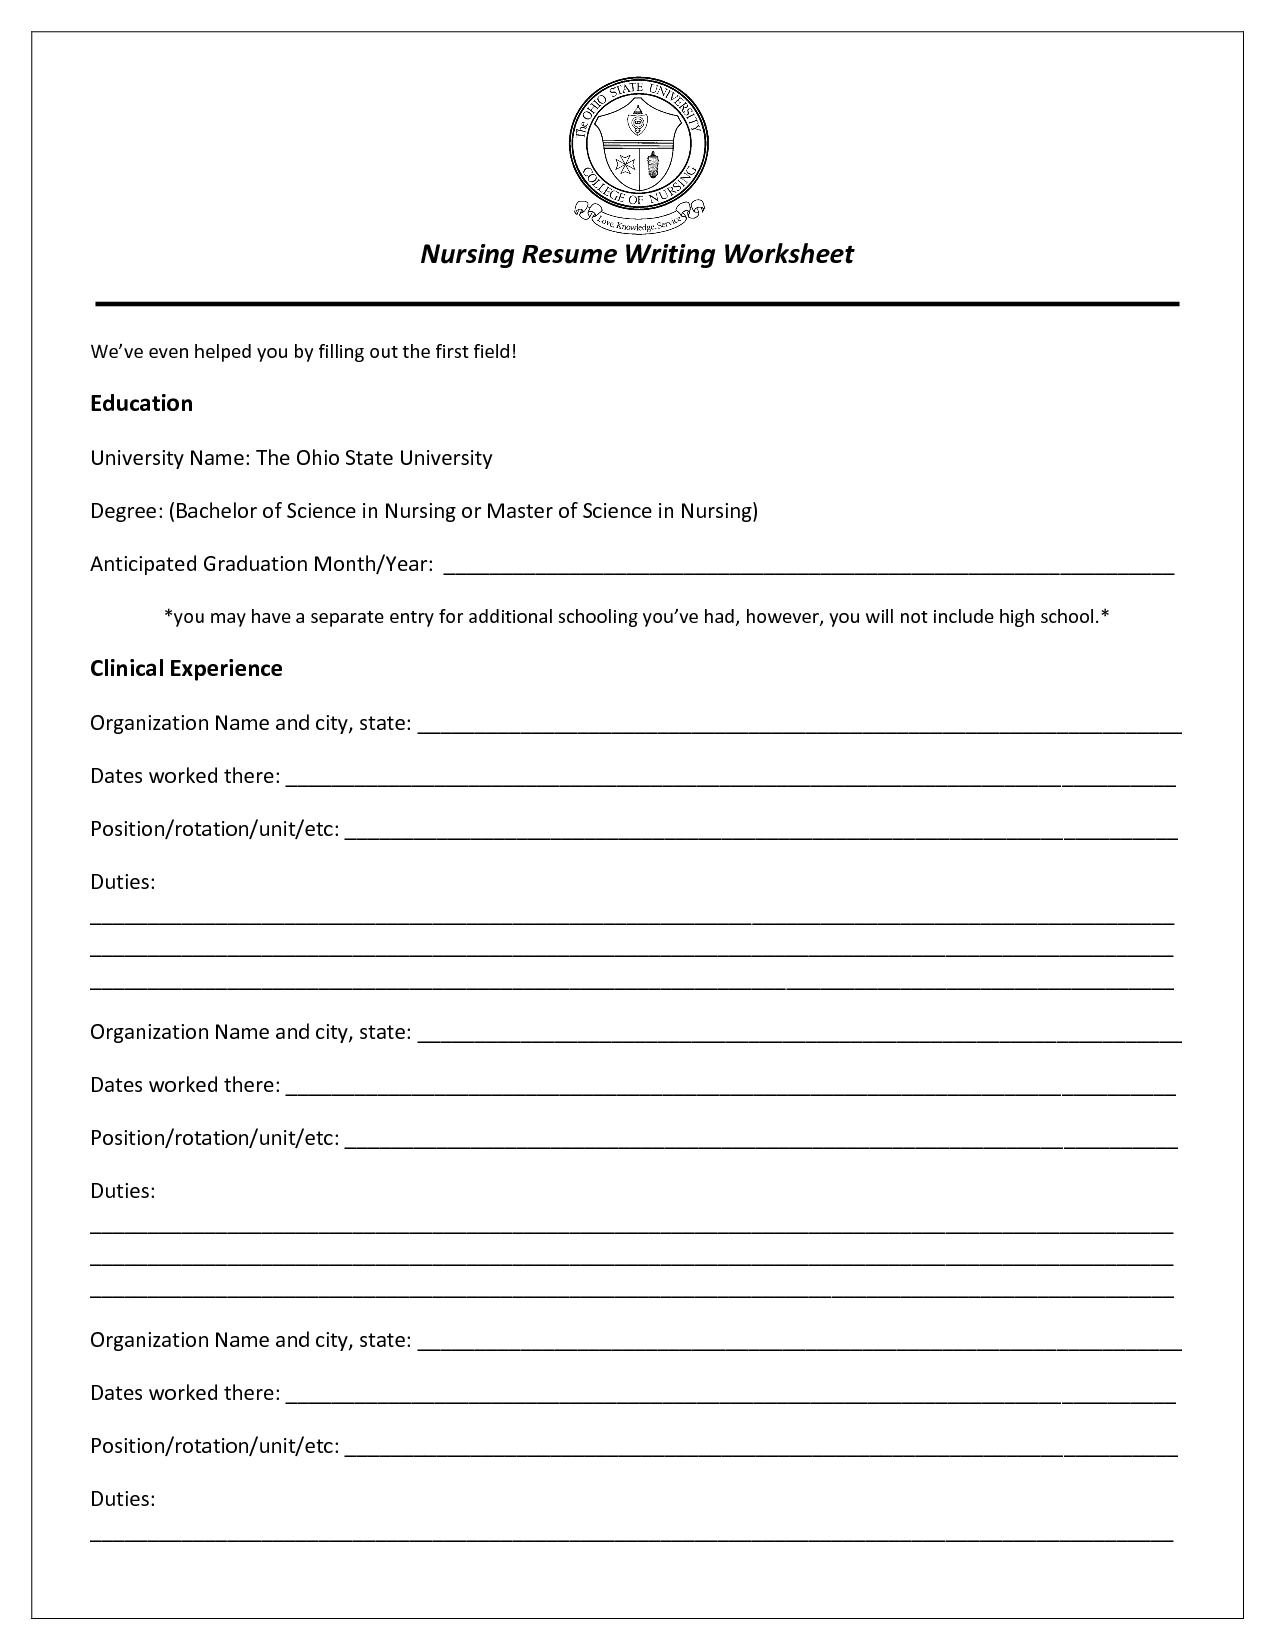 19 Best Images Of Resume Format Worksheet